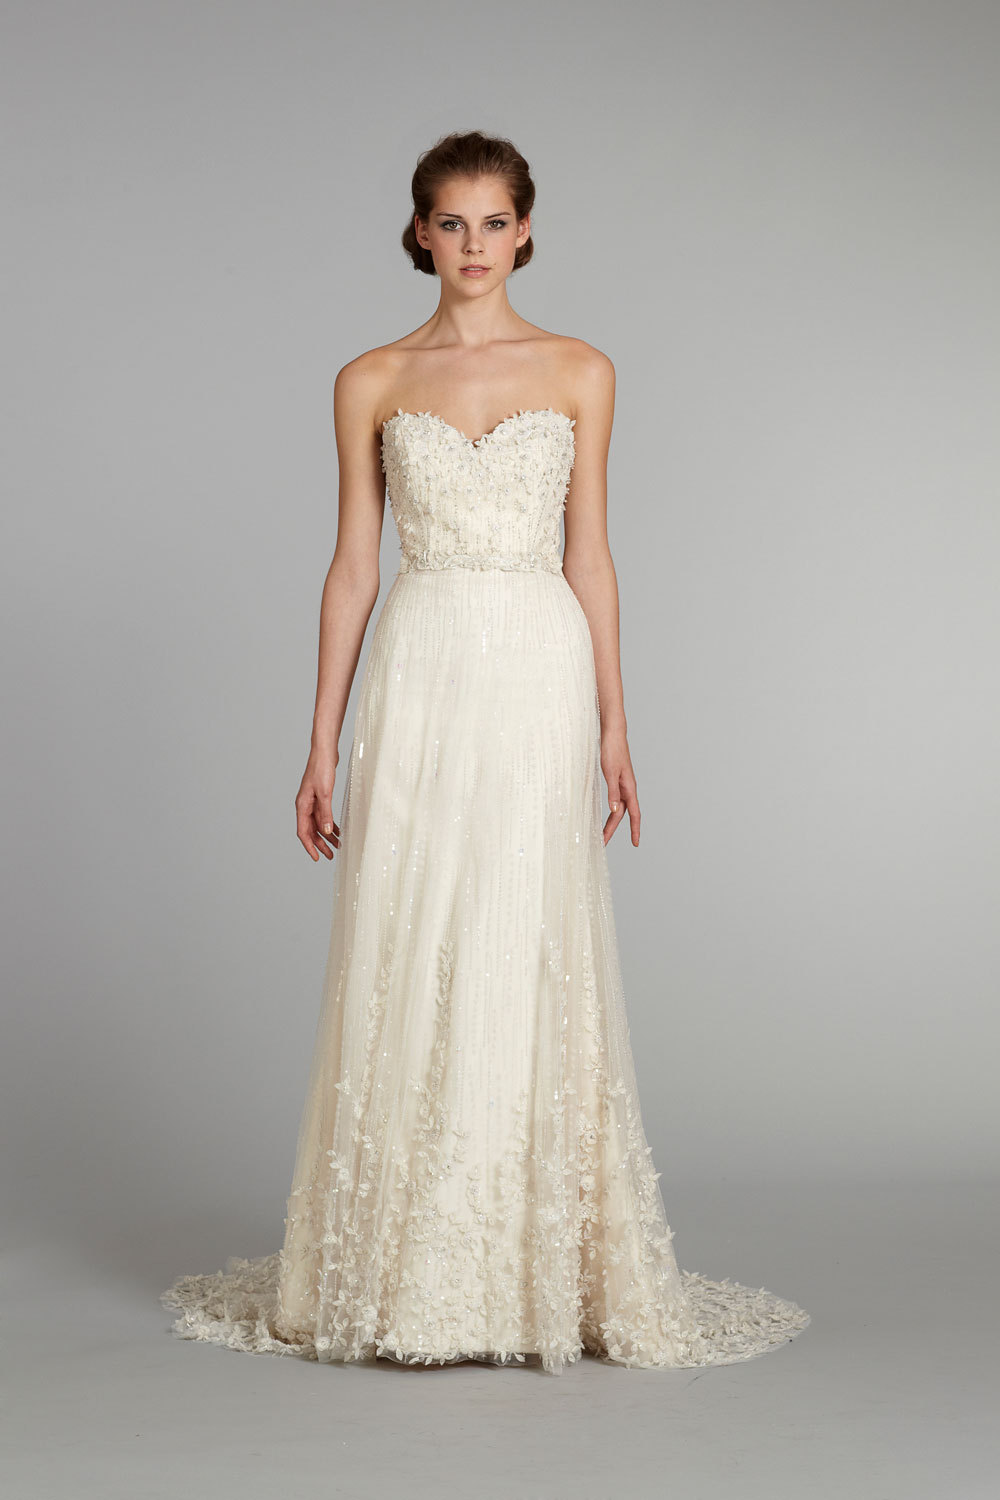 Fall-2012-wedding-dress-lazaro-bridal-gowns-3261-f.full